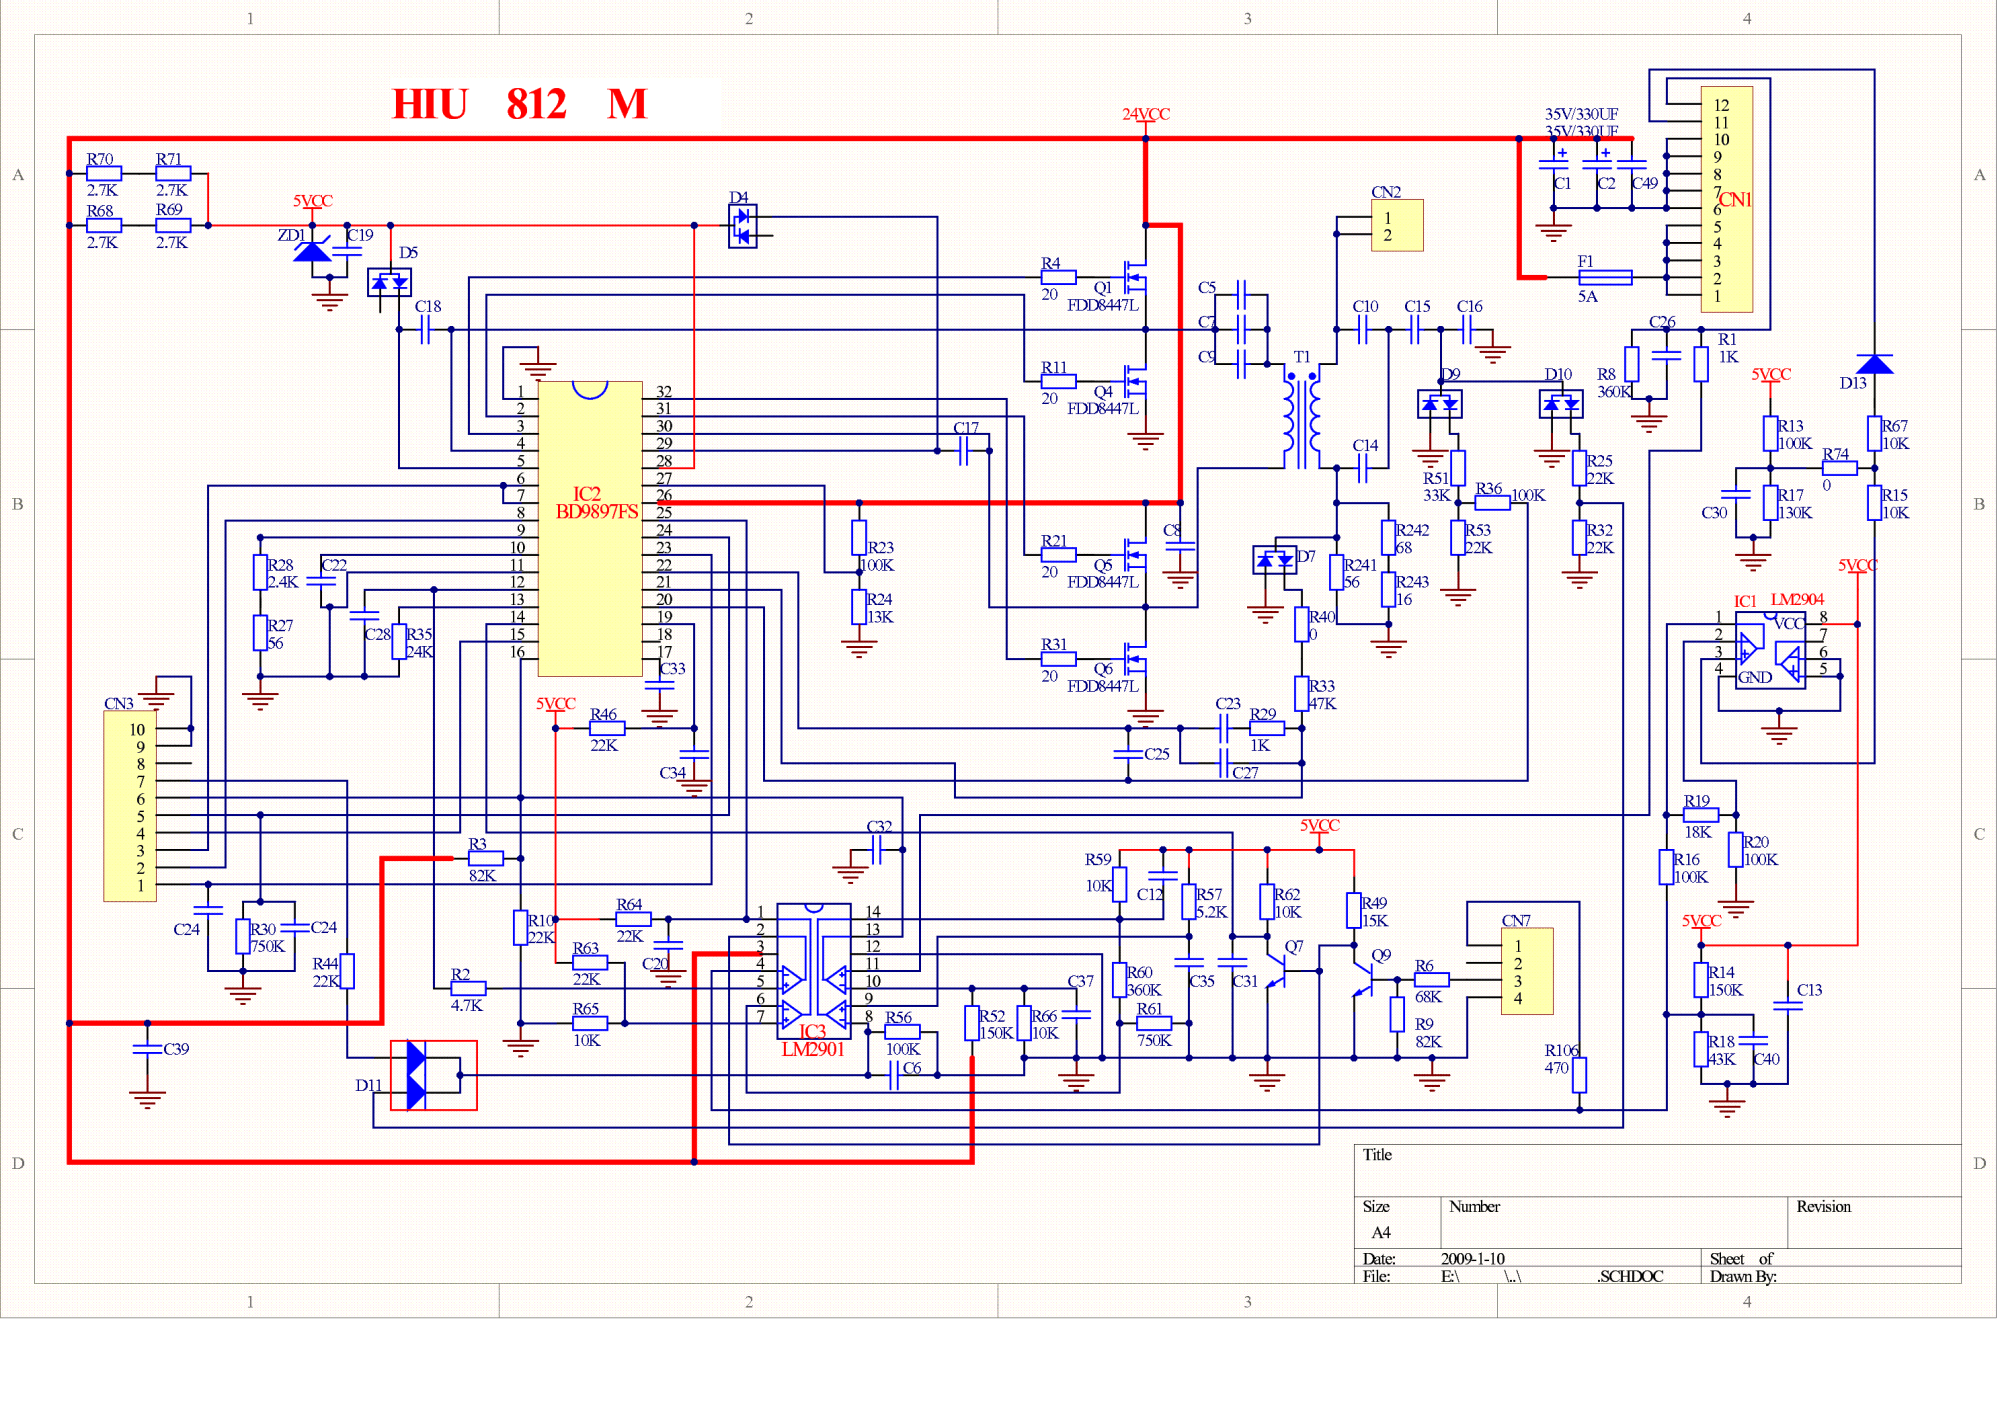 hight resolution of hpc 1654e hiu 812 s hiu812 m lcd tv inverter service manual download lcd tv inverter circuit diagram